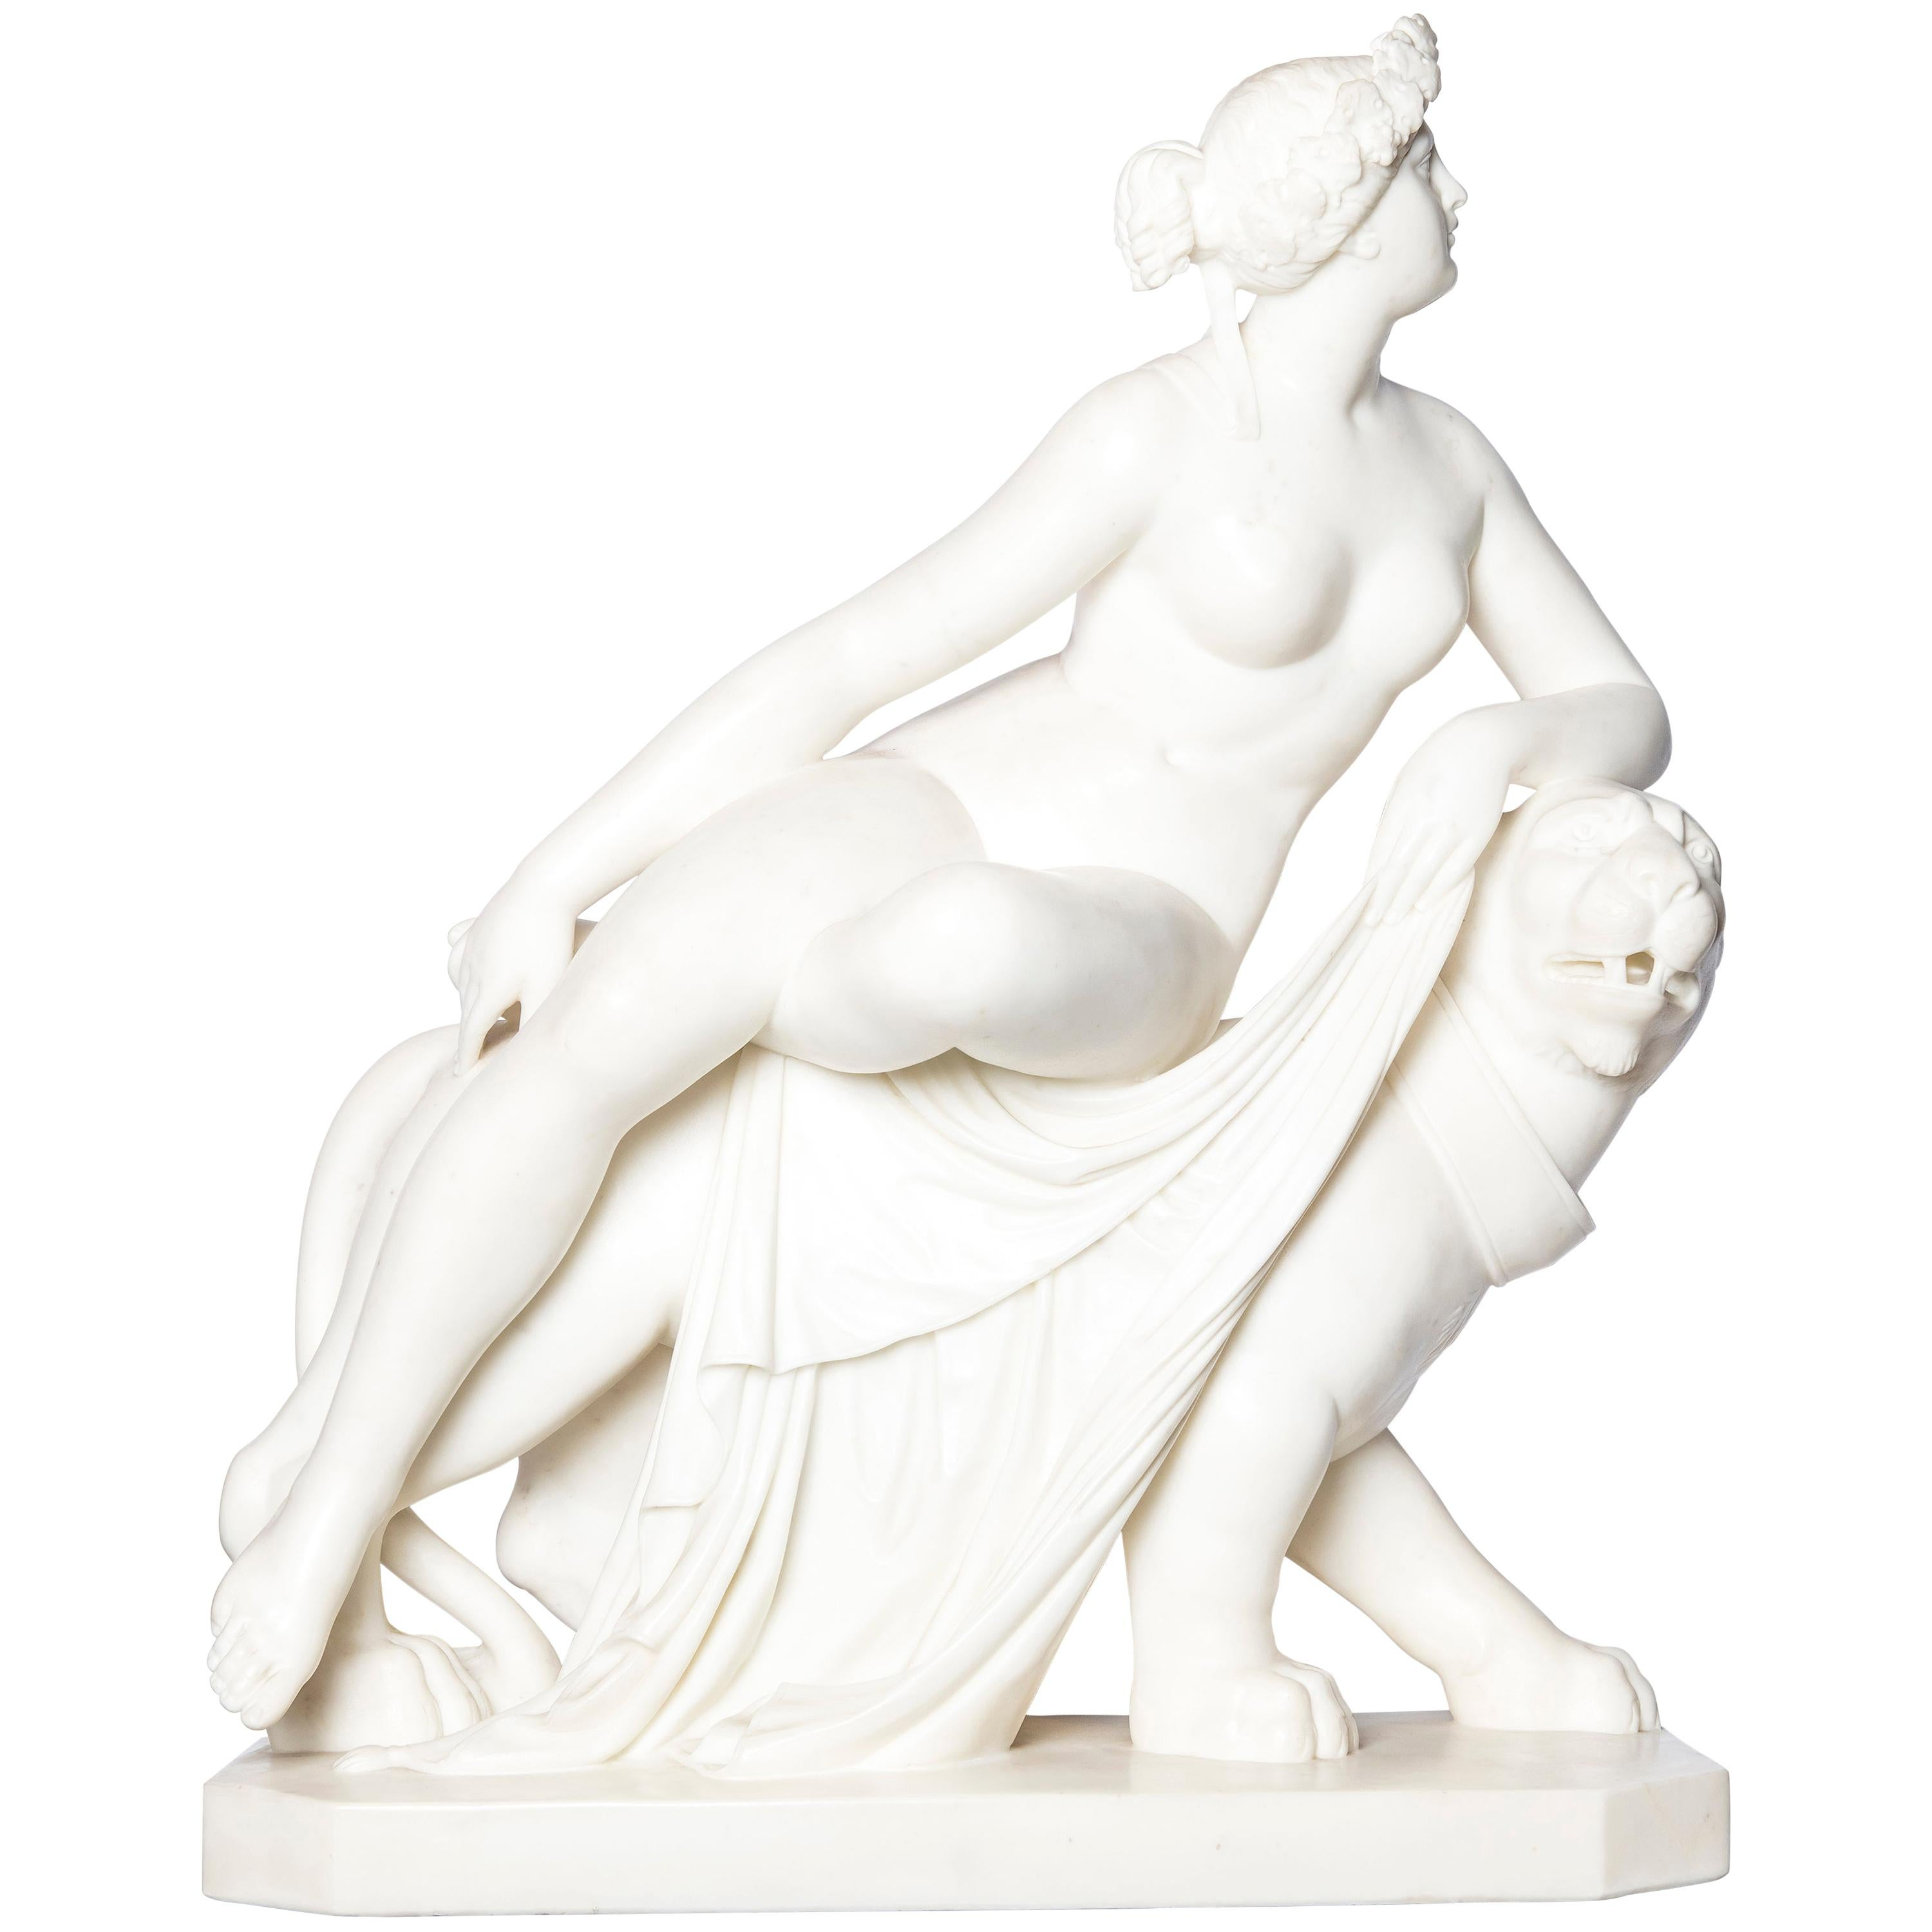 """Carrara Marble Sculpture """"Ariadne on the Panther"""" Signed A. Frilli, Firenze"""